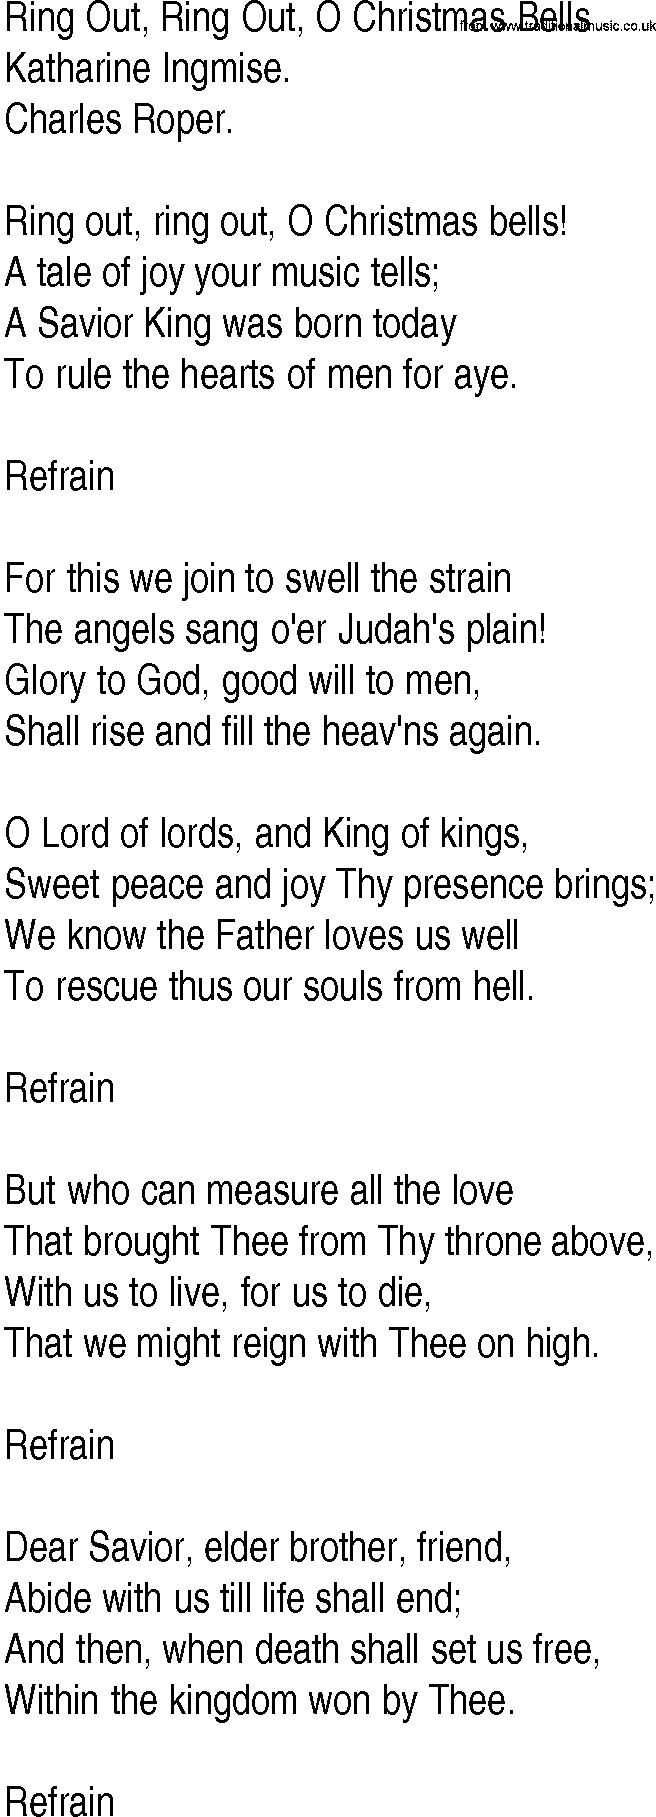 Hymn and Gospel Song Lyrics for Ring Out, Ring Out, O Christmas